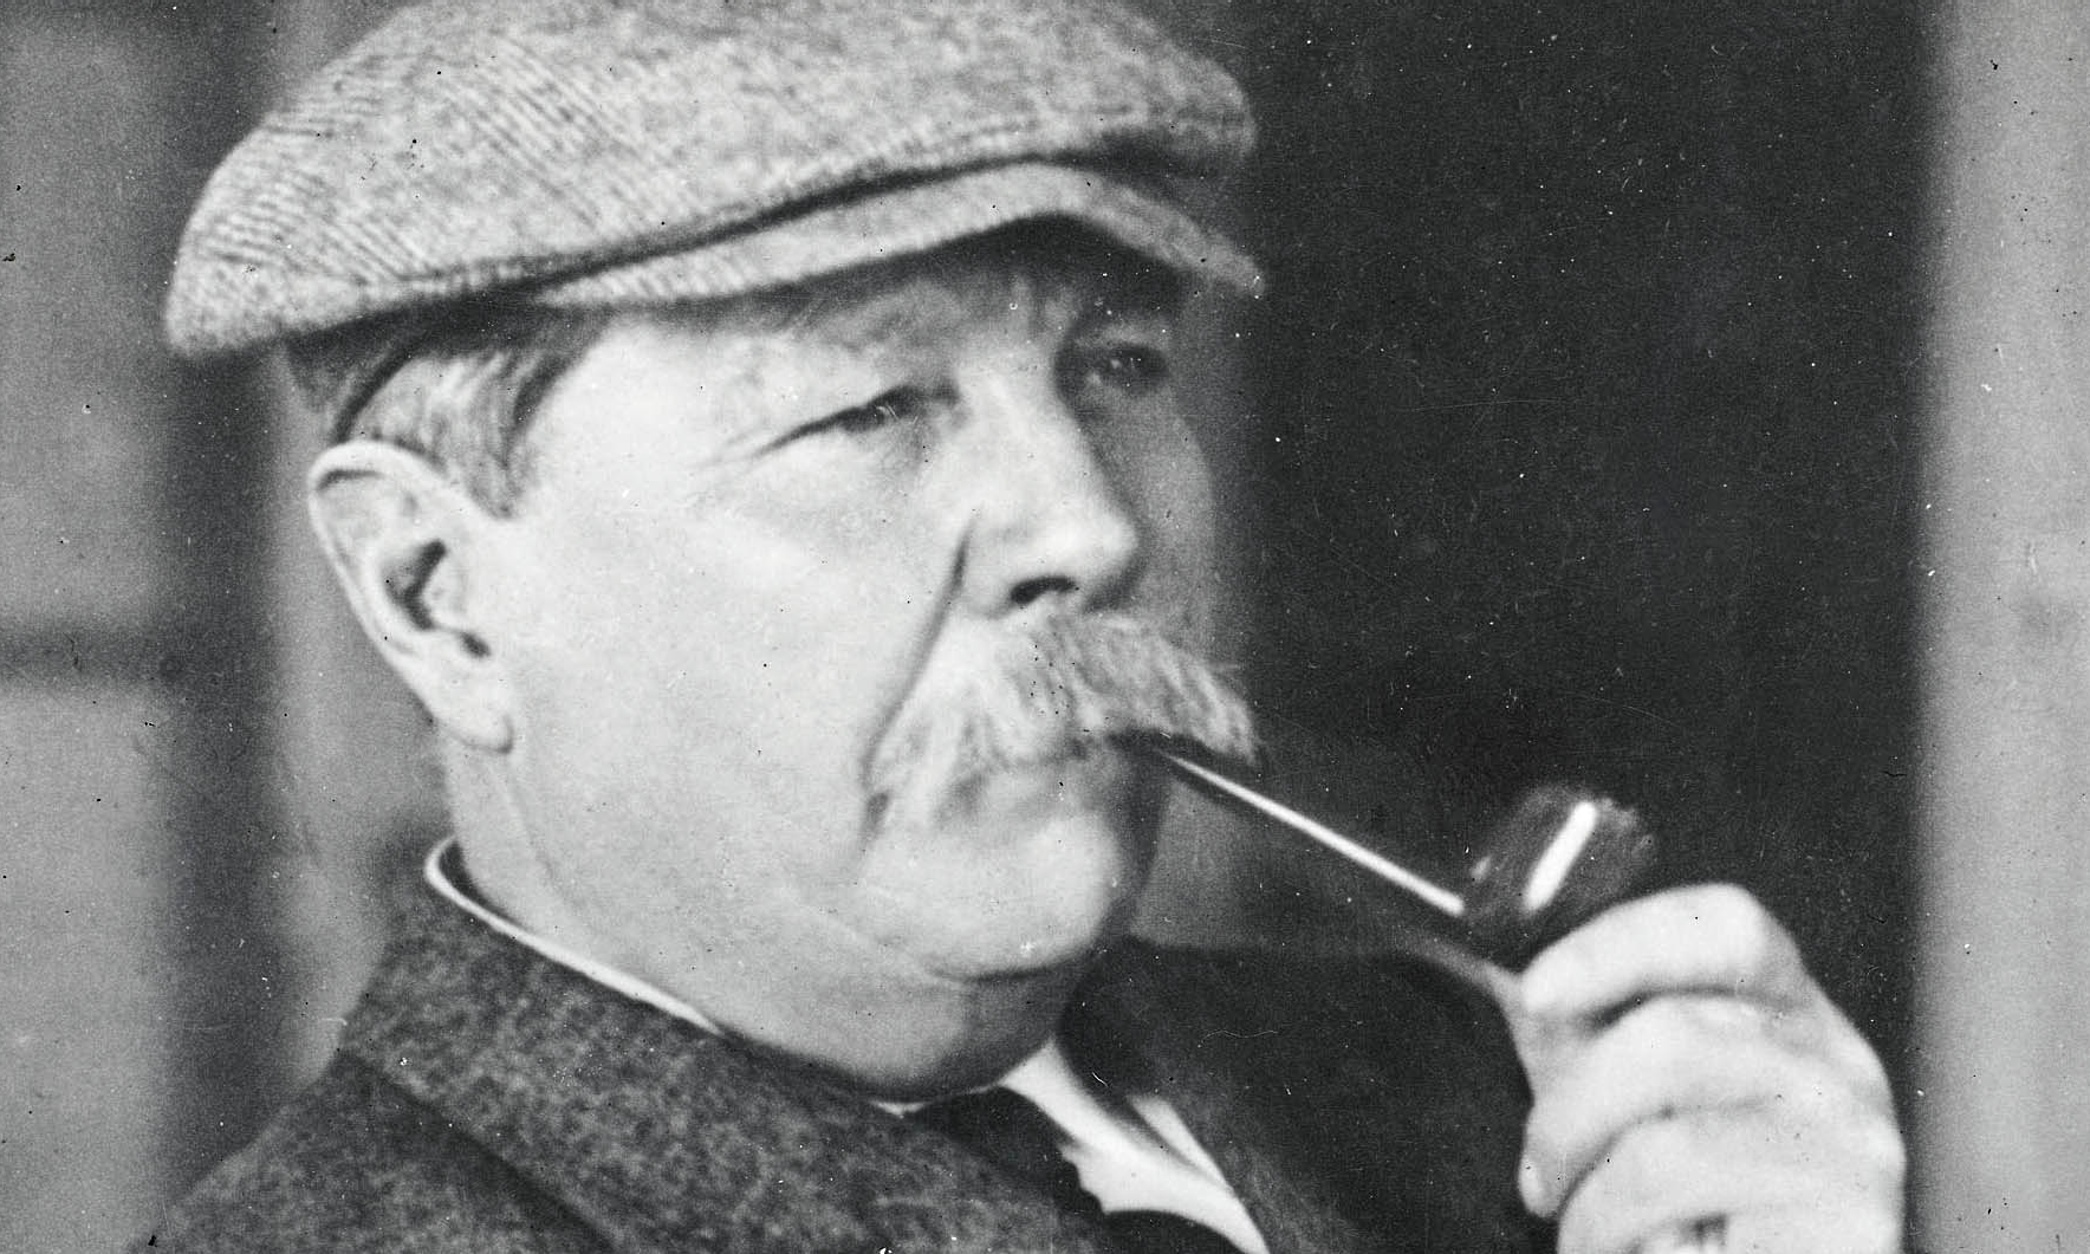 sir arthur conan doyle As we celebrate sir arthur conan doyle's 159th birthday, here are the finest outings of his famed detective creation.